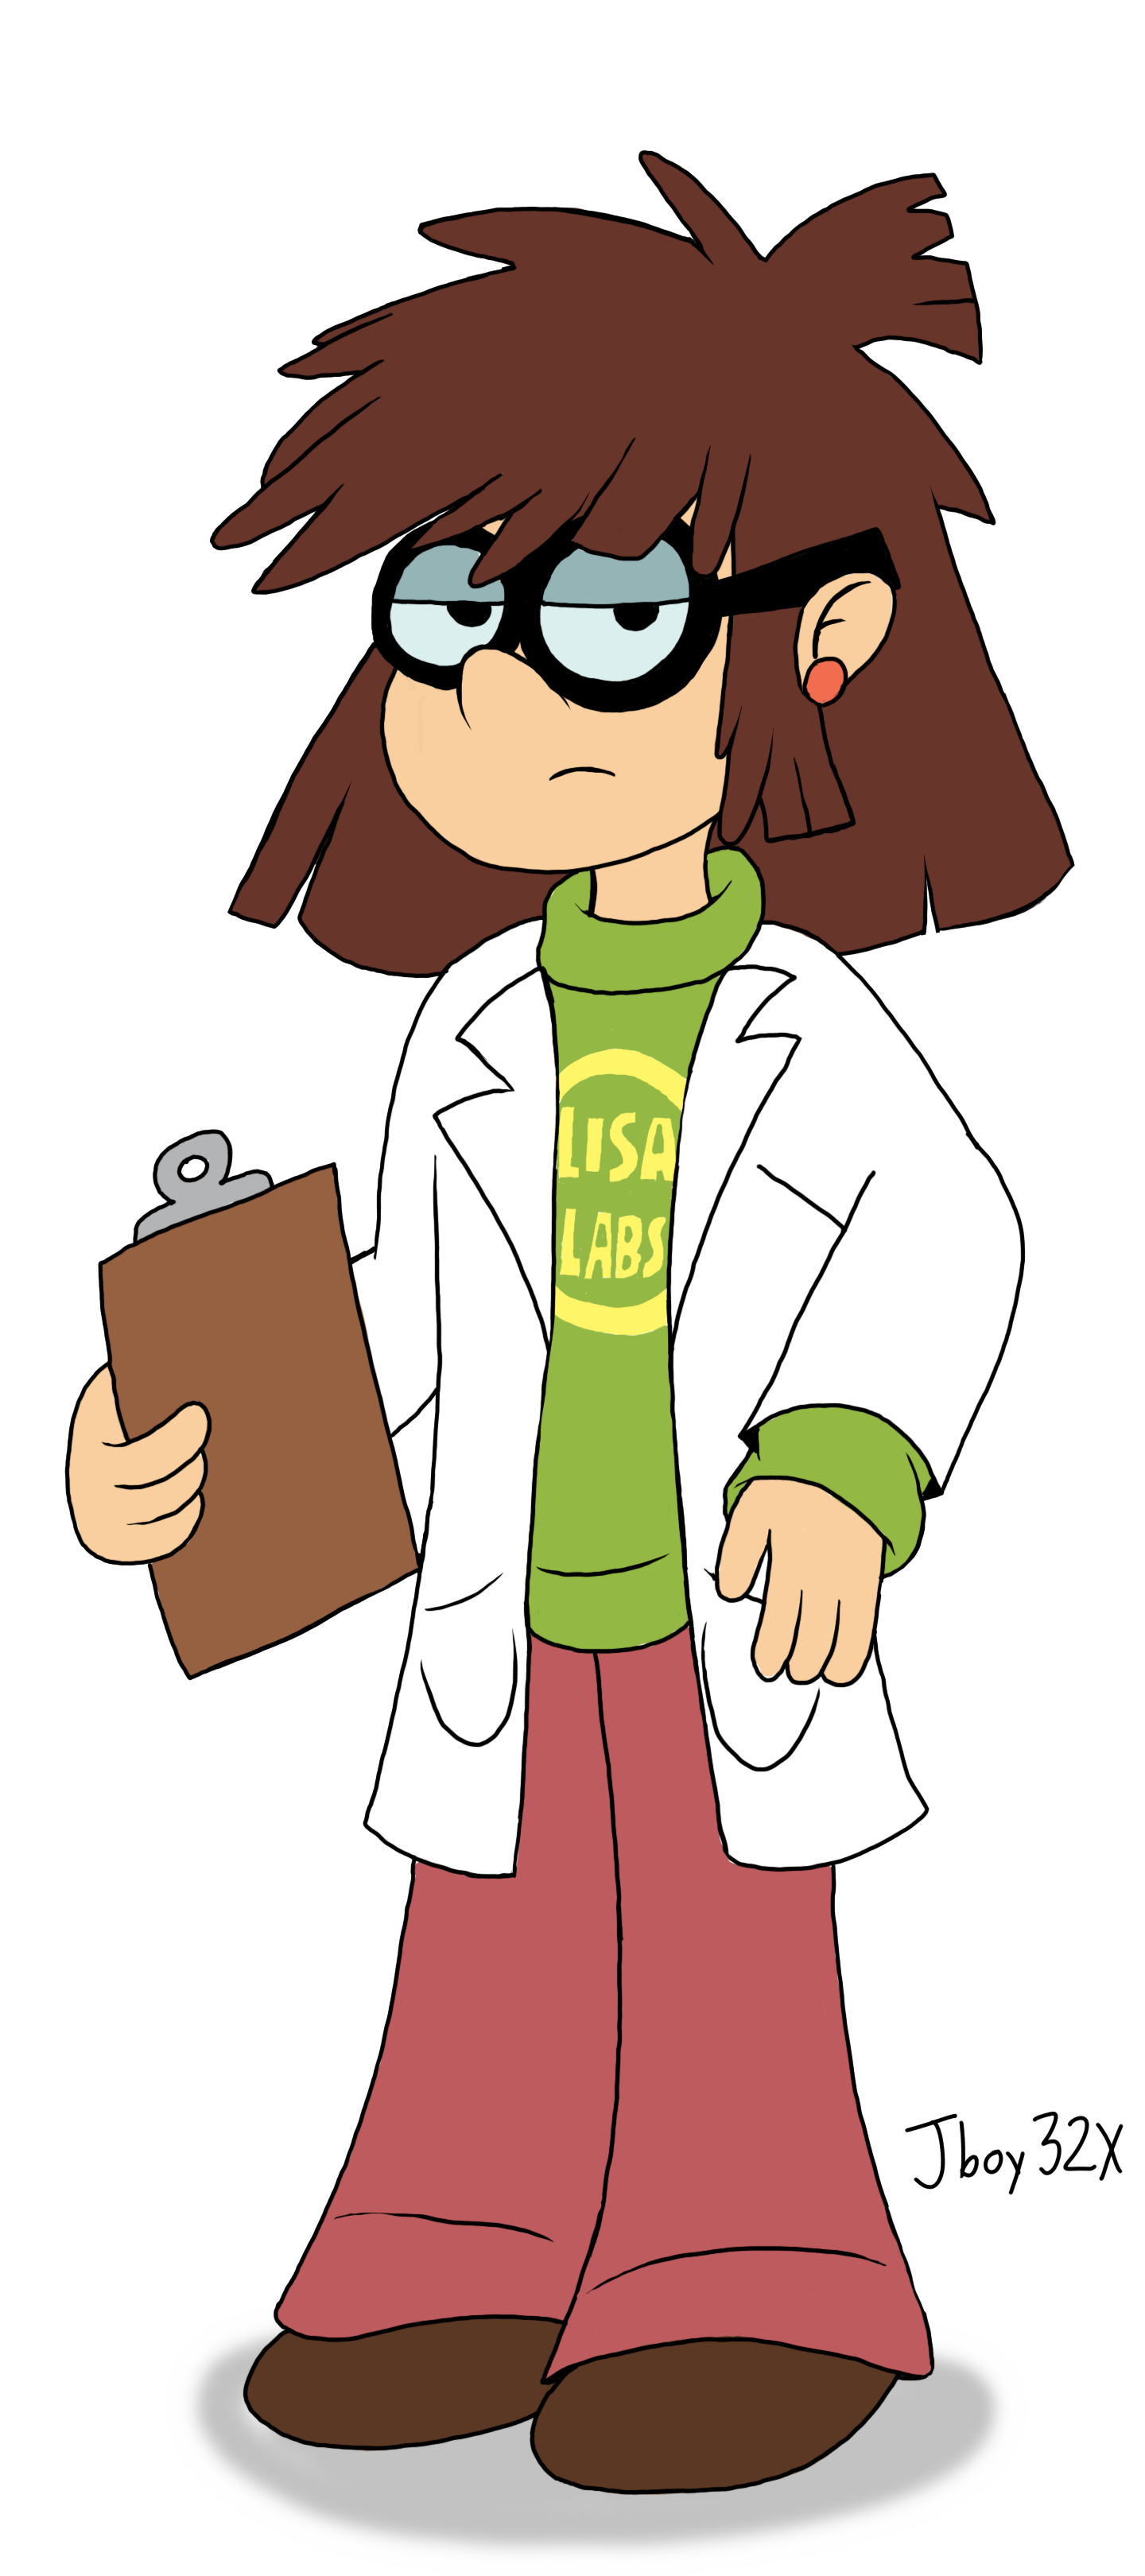 Lisa loud by jboy. Young clipart older age